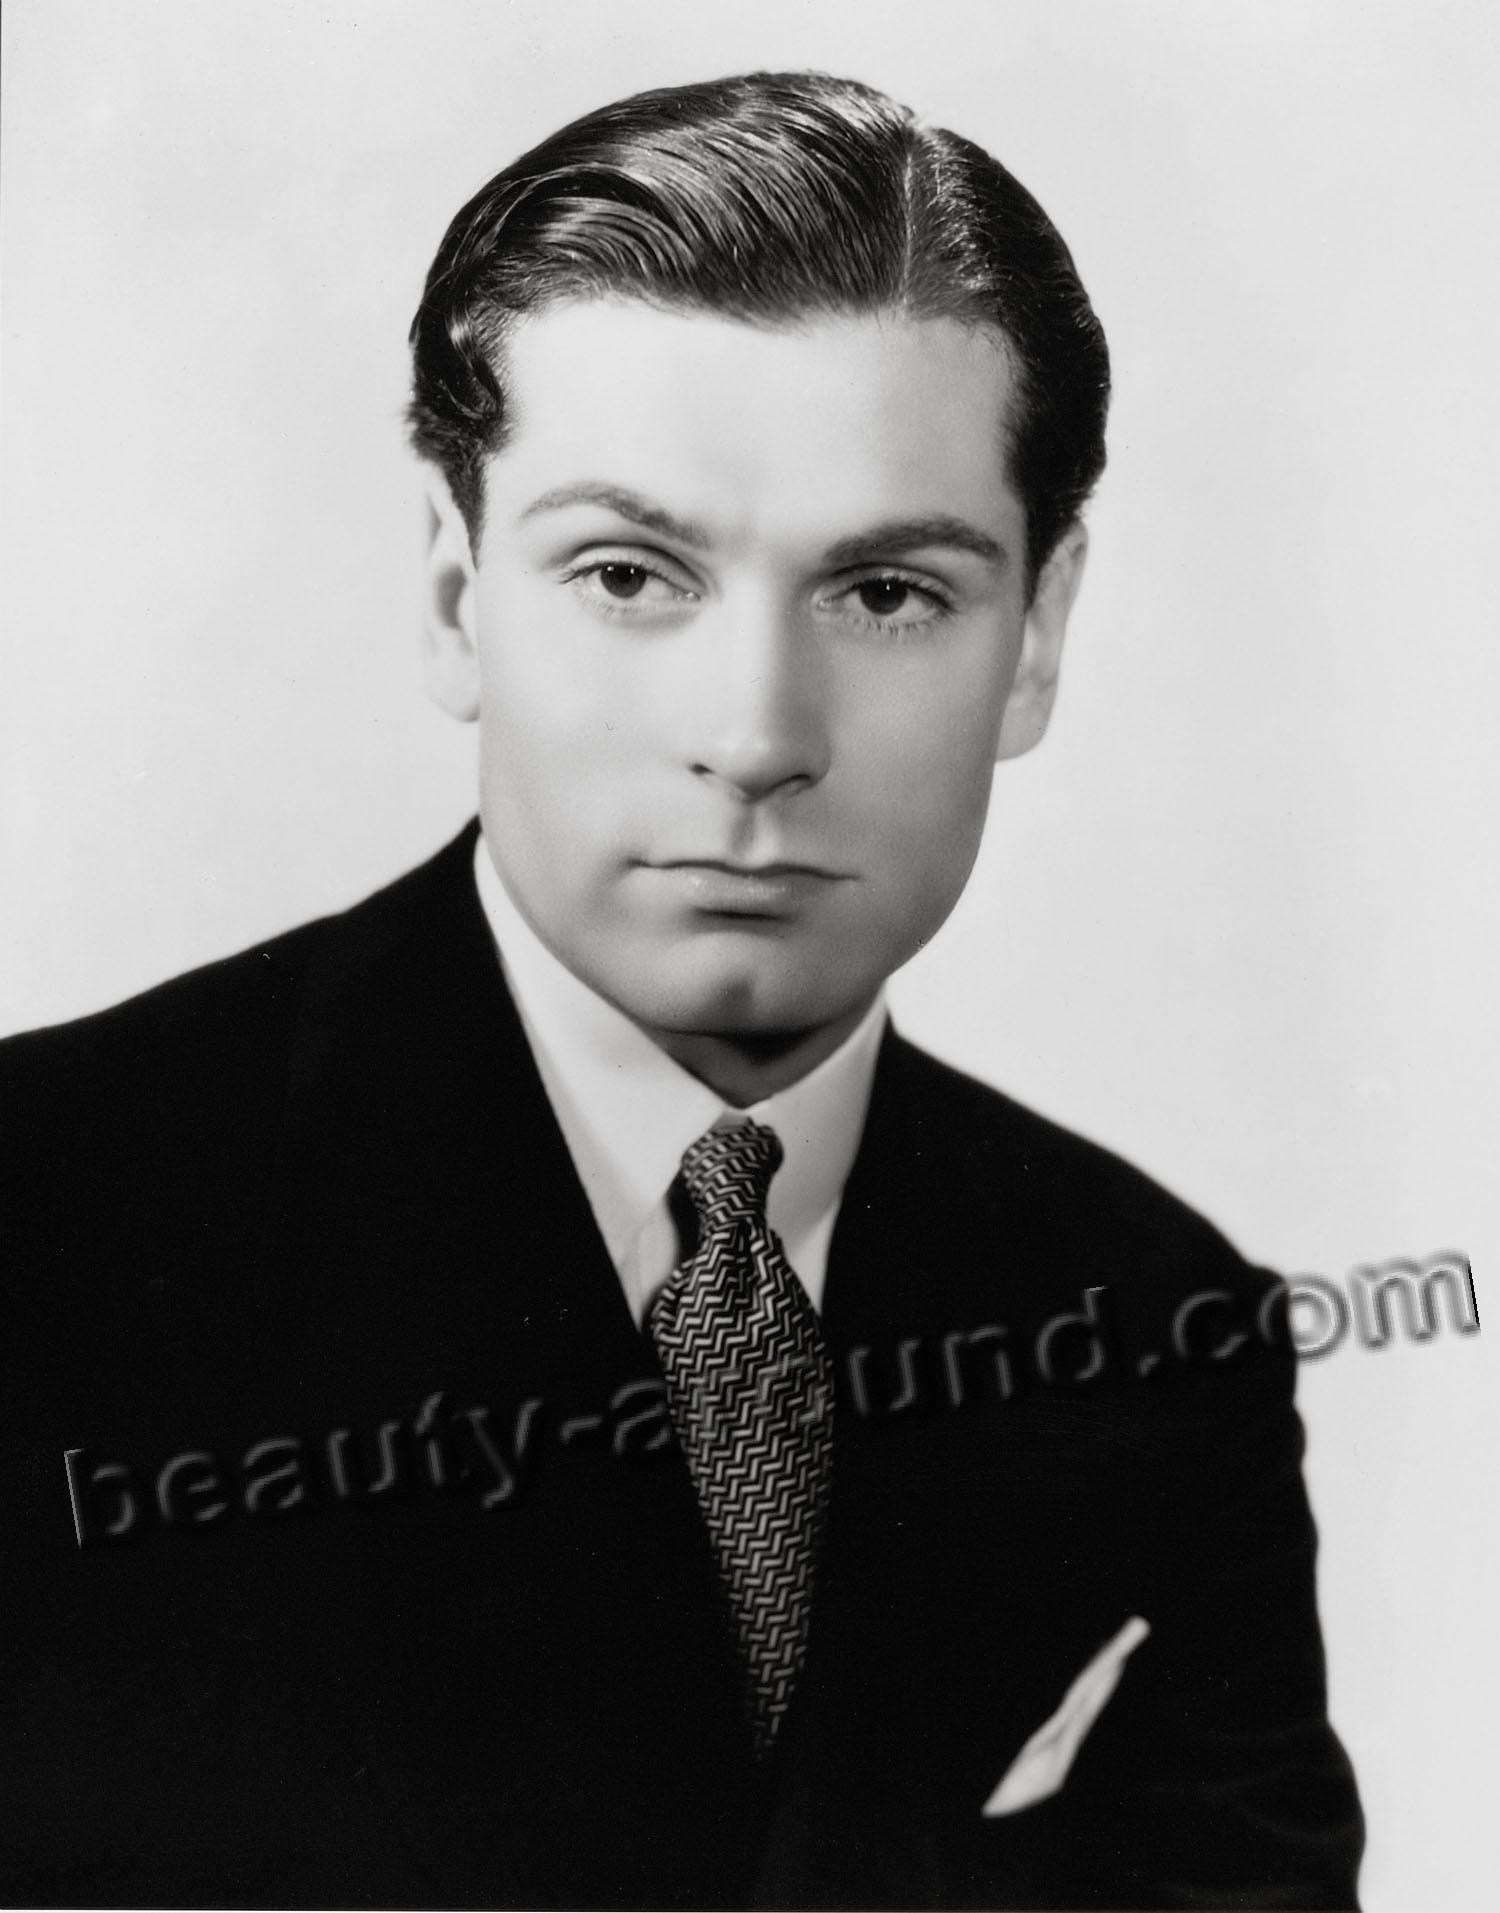 Laurence Olivier, British film and theater actor